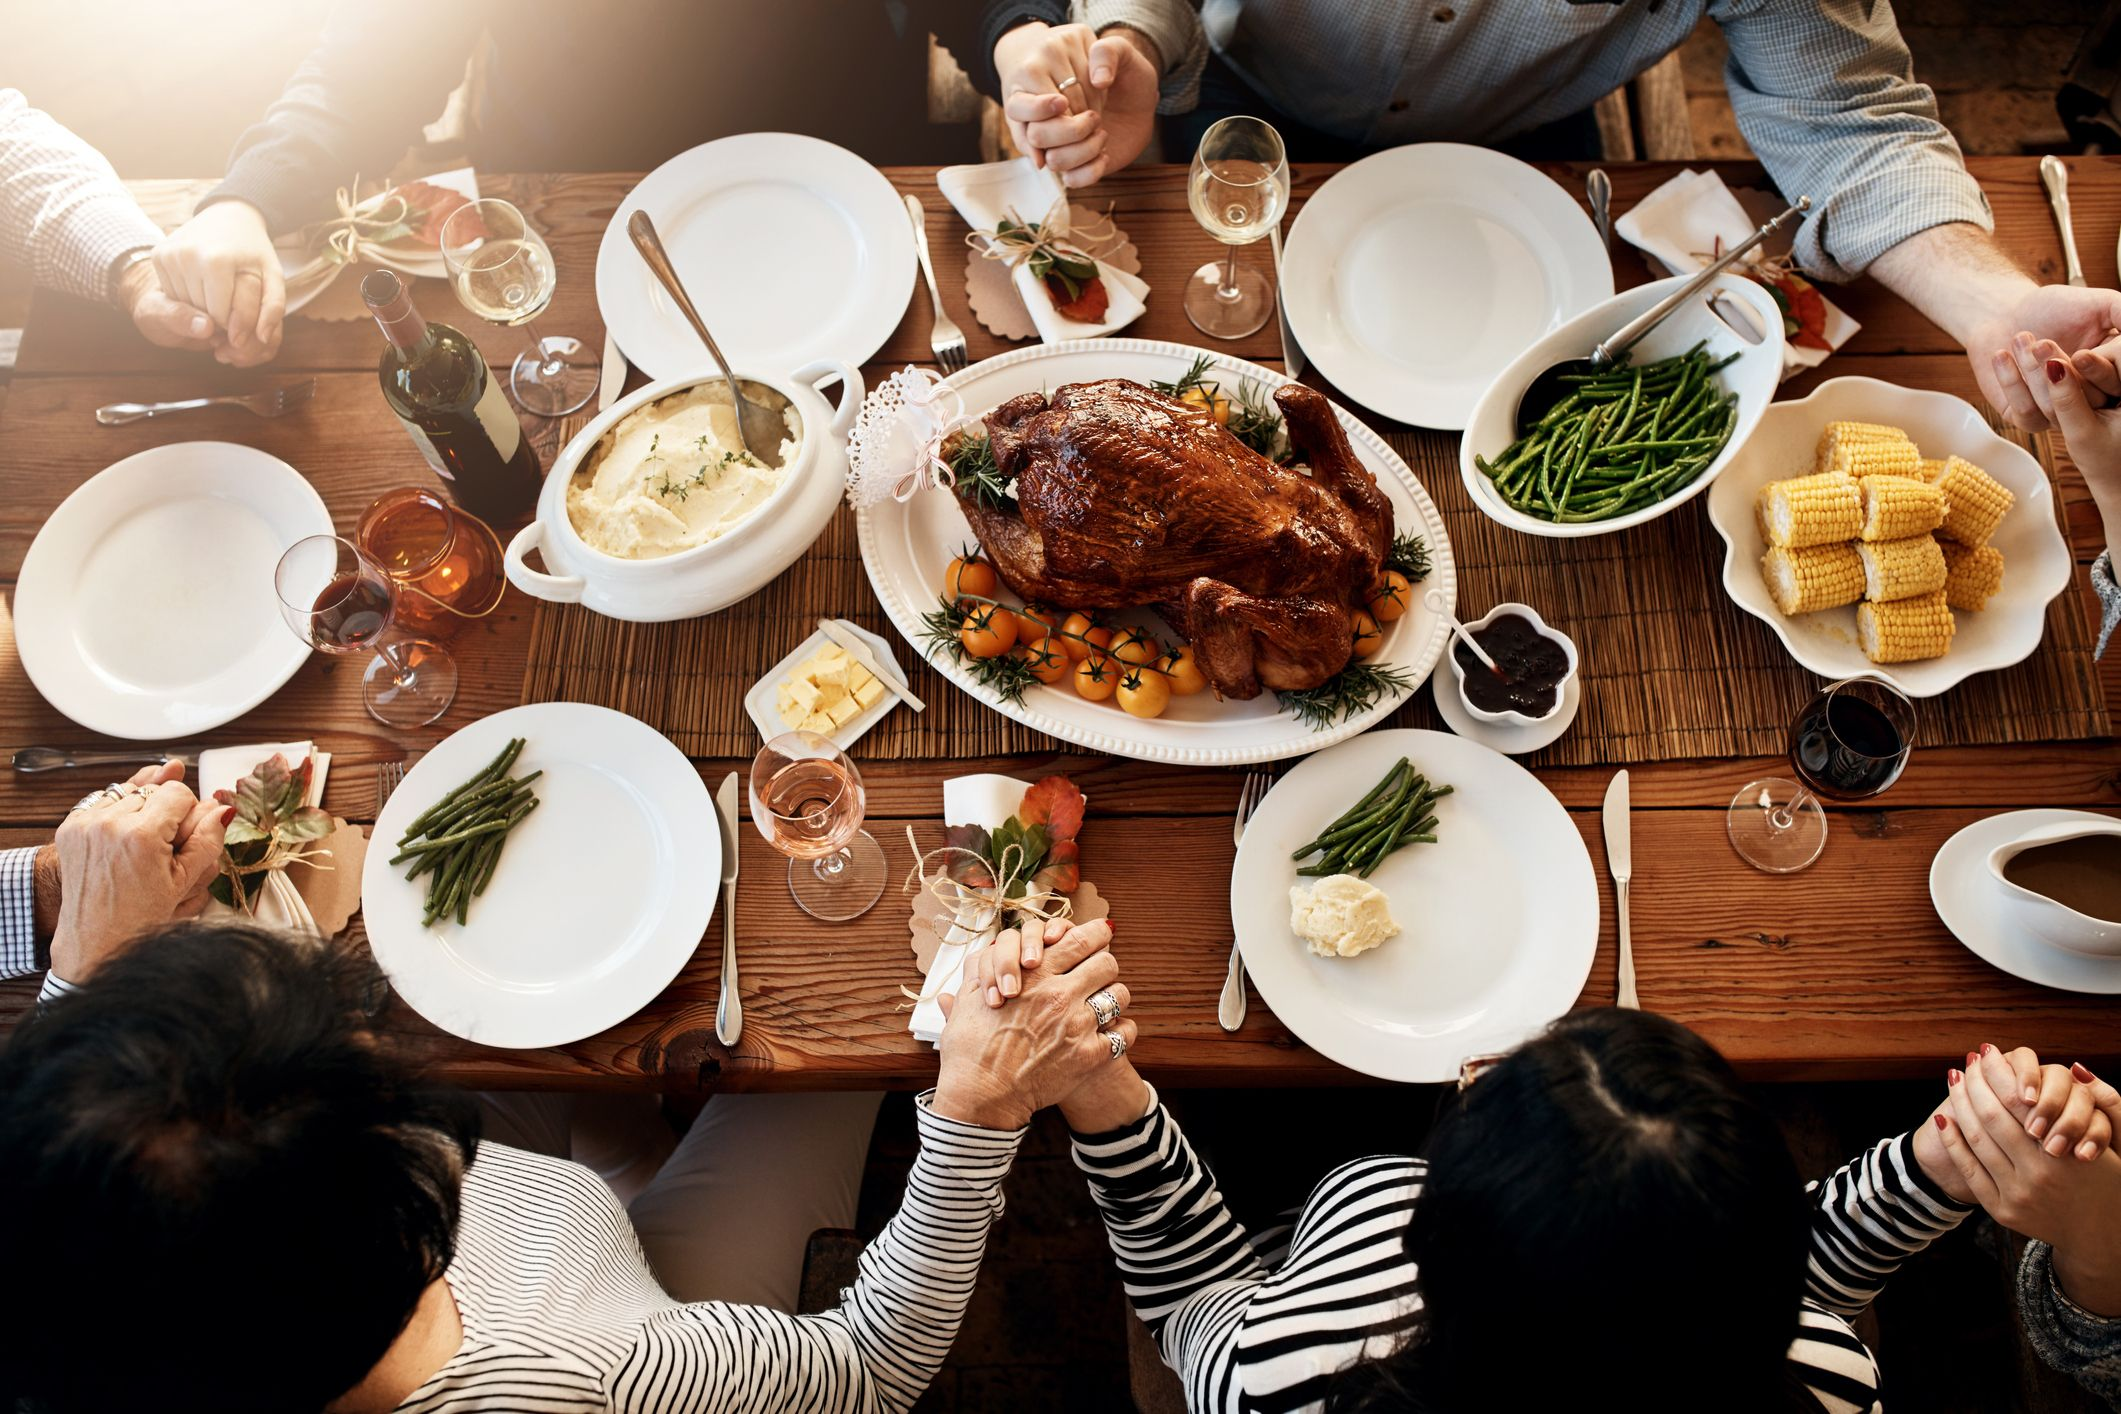 20 Best Thanksgiving Traditions to Try With Your Family This Year